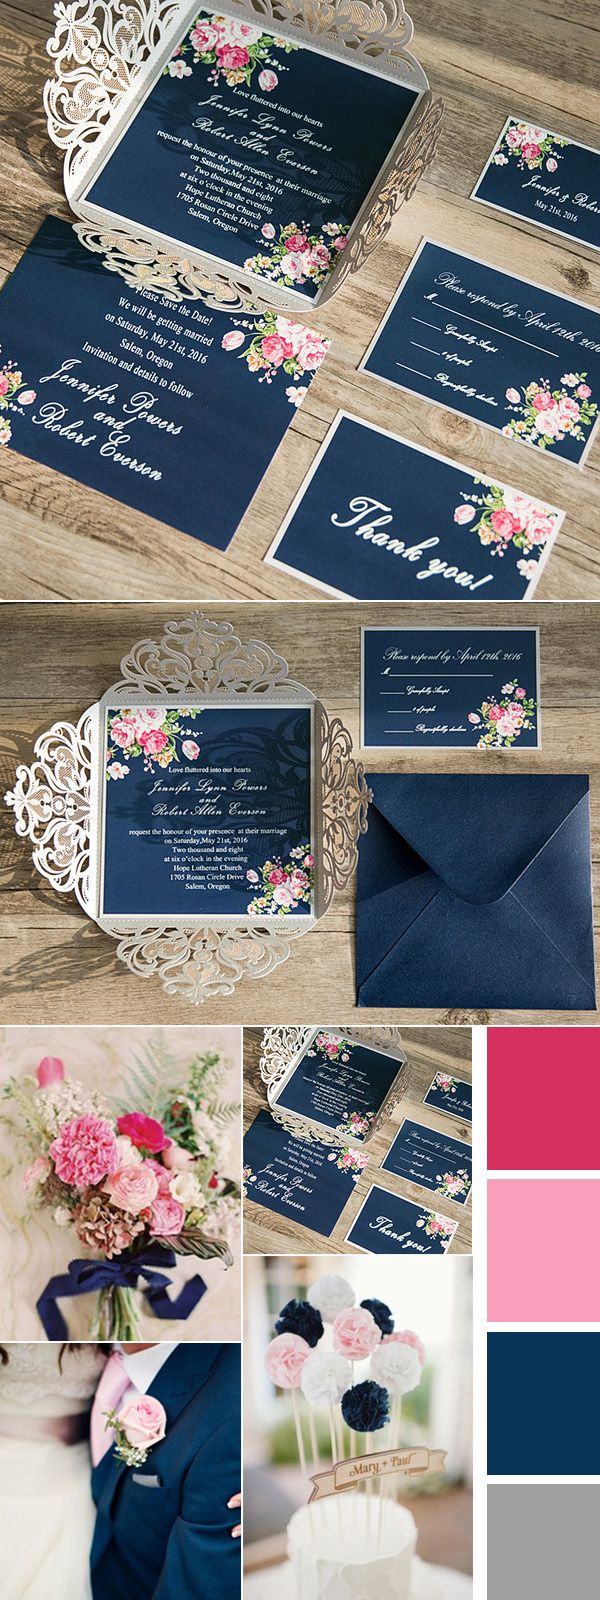 Shabby Chic Floral Navy Blue and Pink Wedding Colors Inspired Laser Cut Wedding Invitations @elegantwinvites ---- 15% OFF CODE: ppe